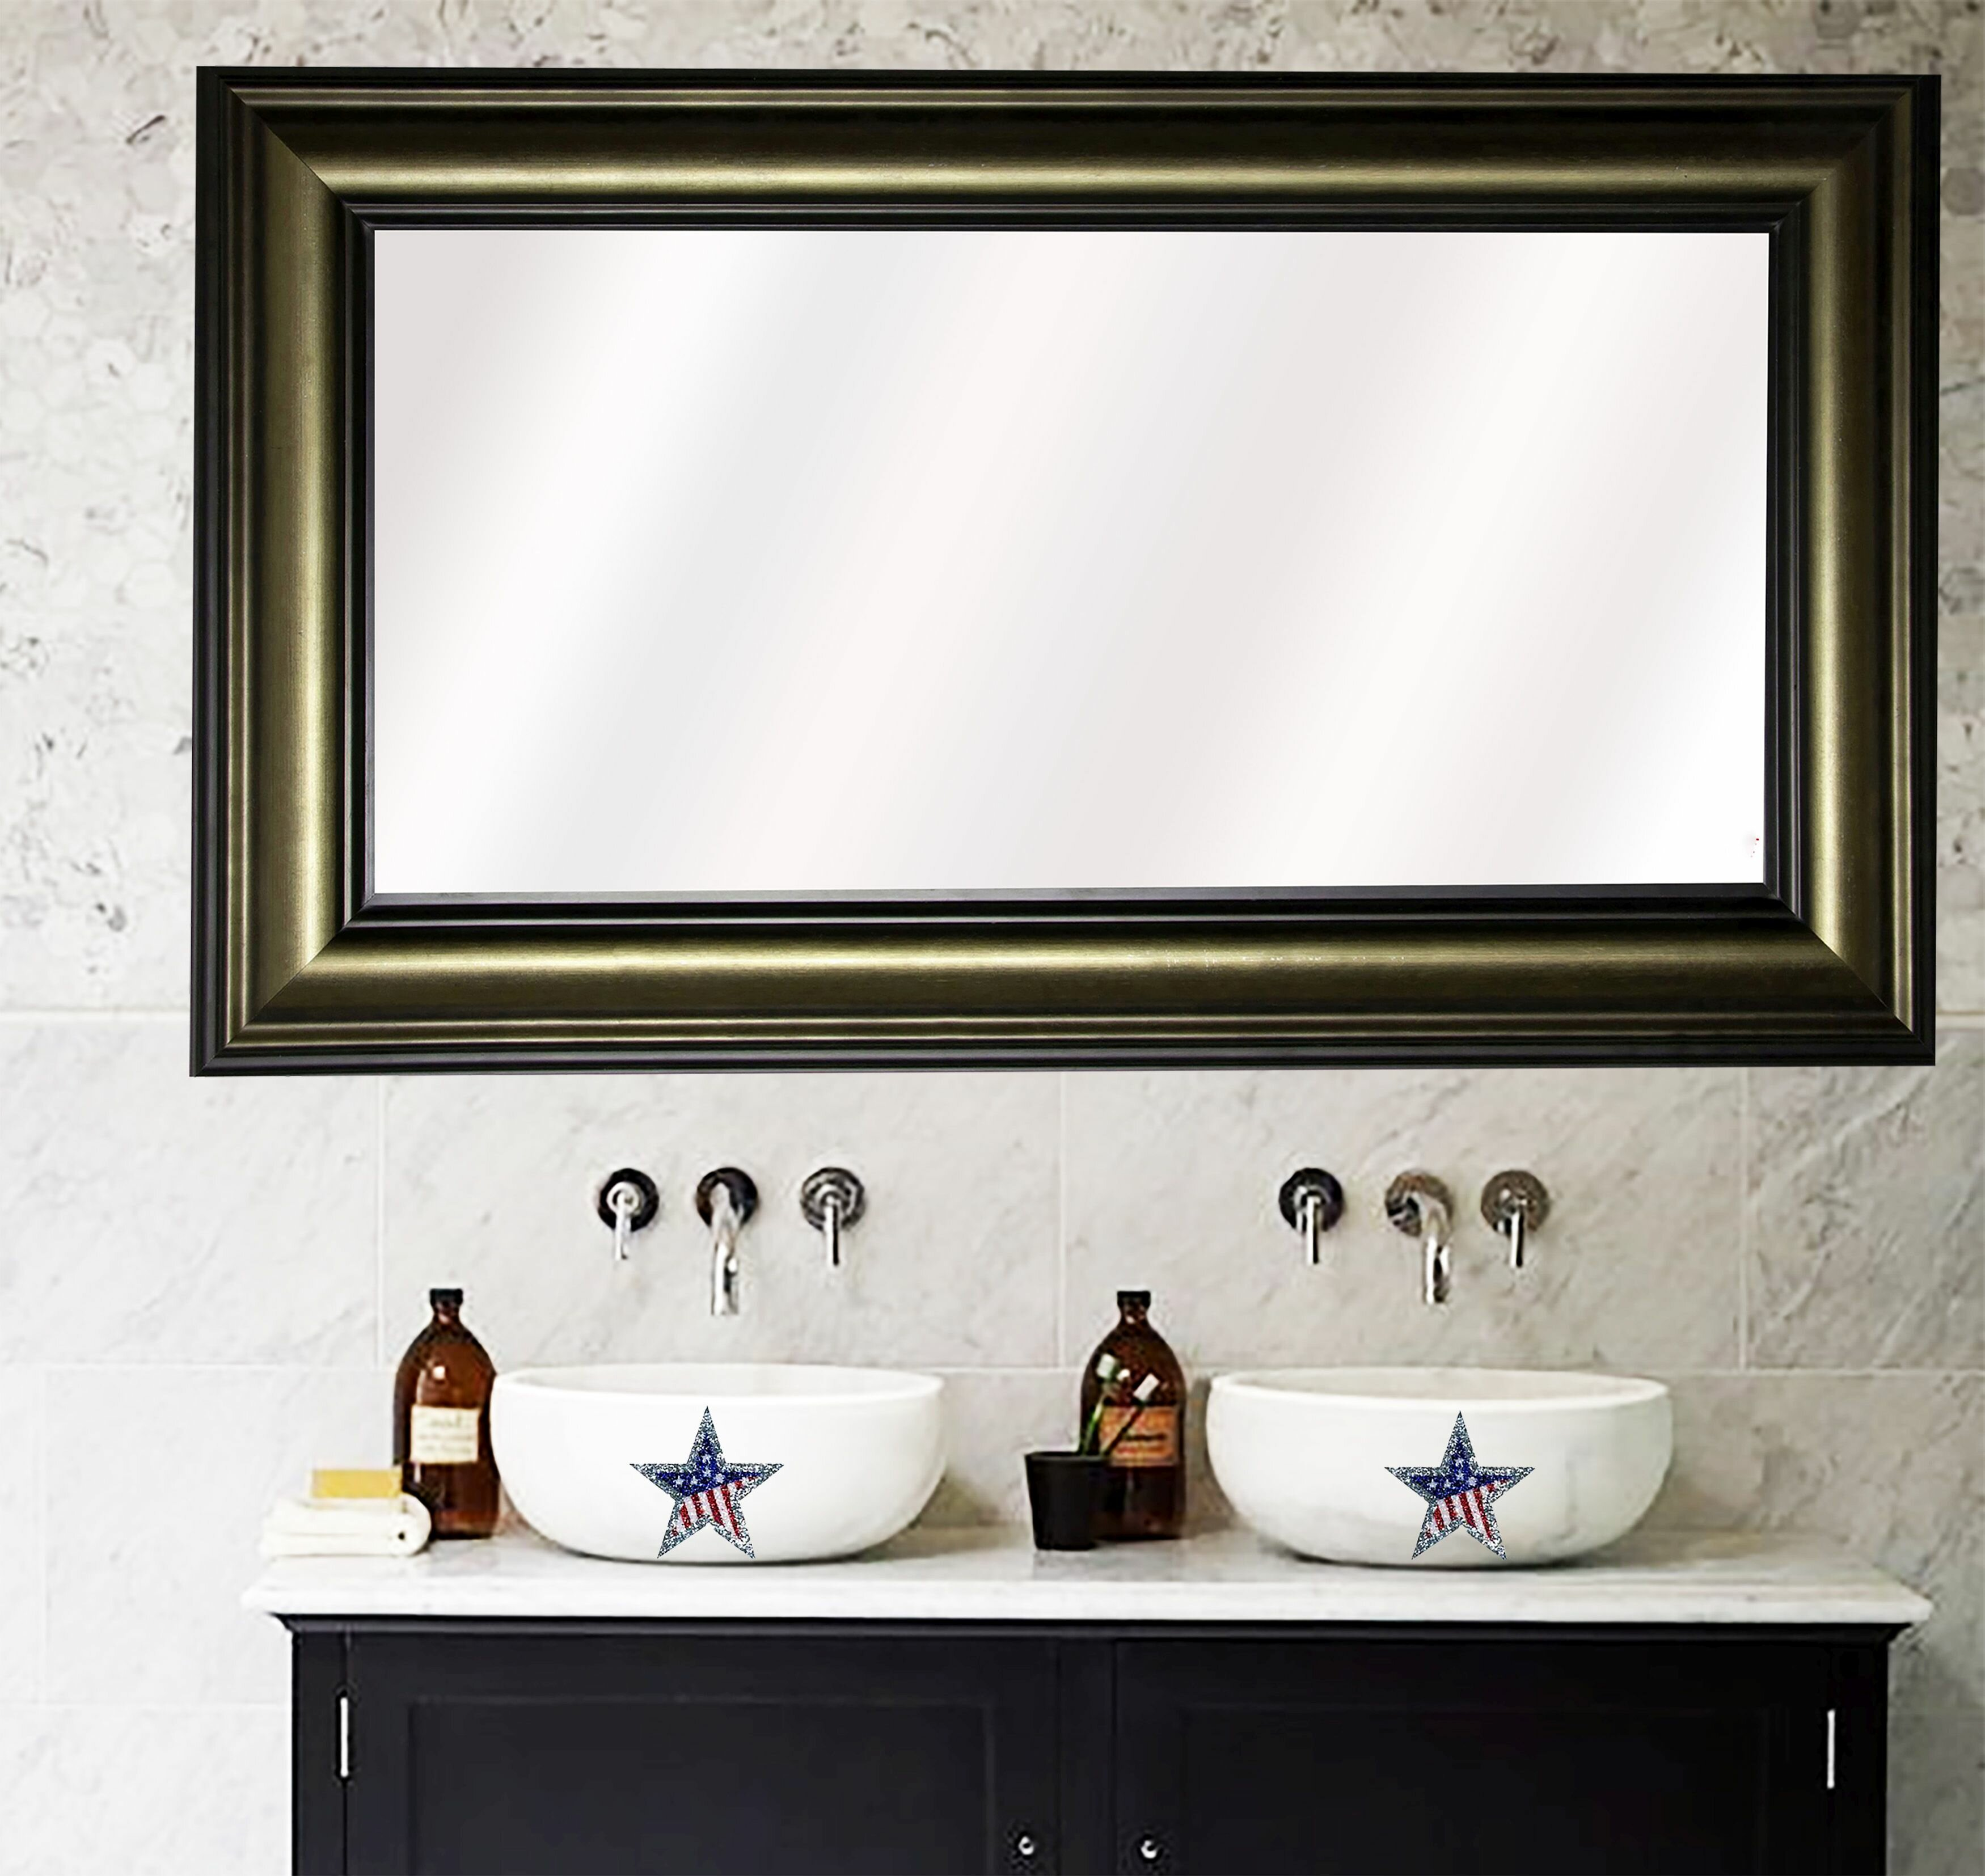 Rosdorf Park Navarro Antique Bathroom/Vanity Mirror | Wayfair